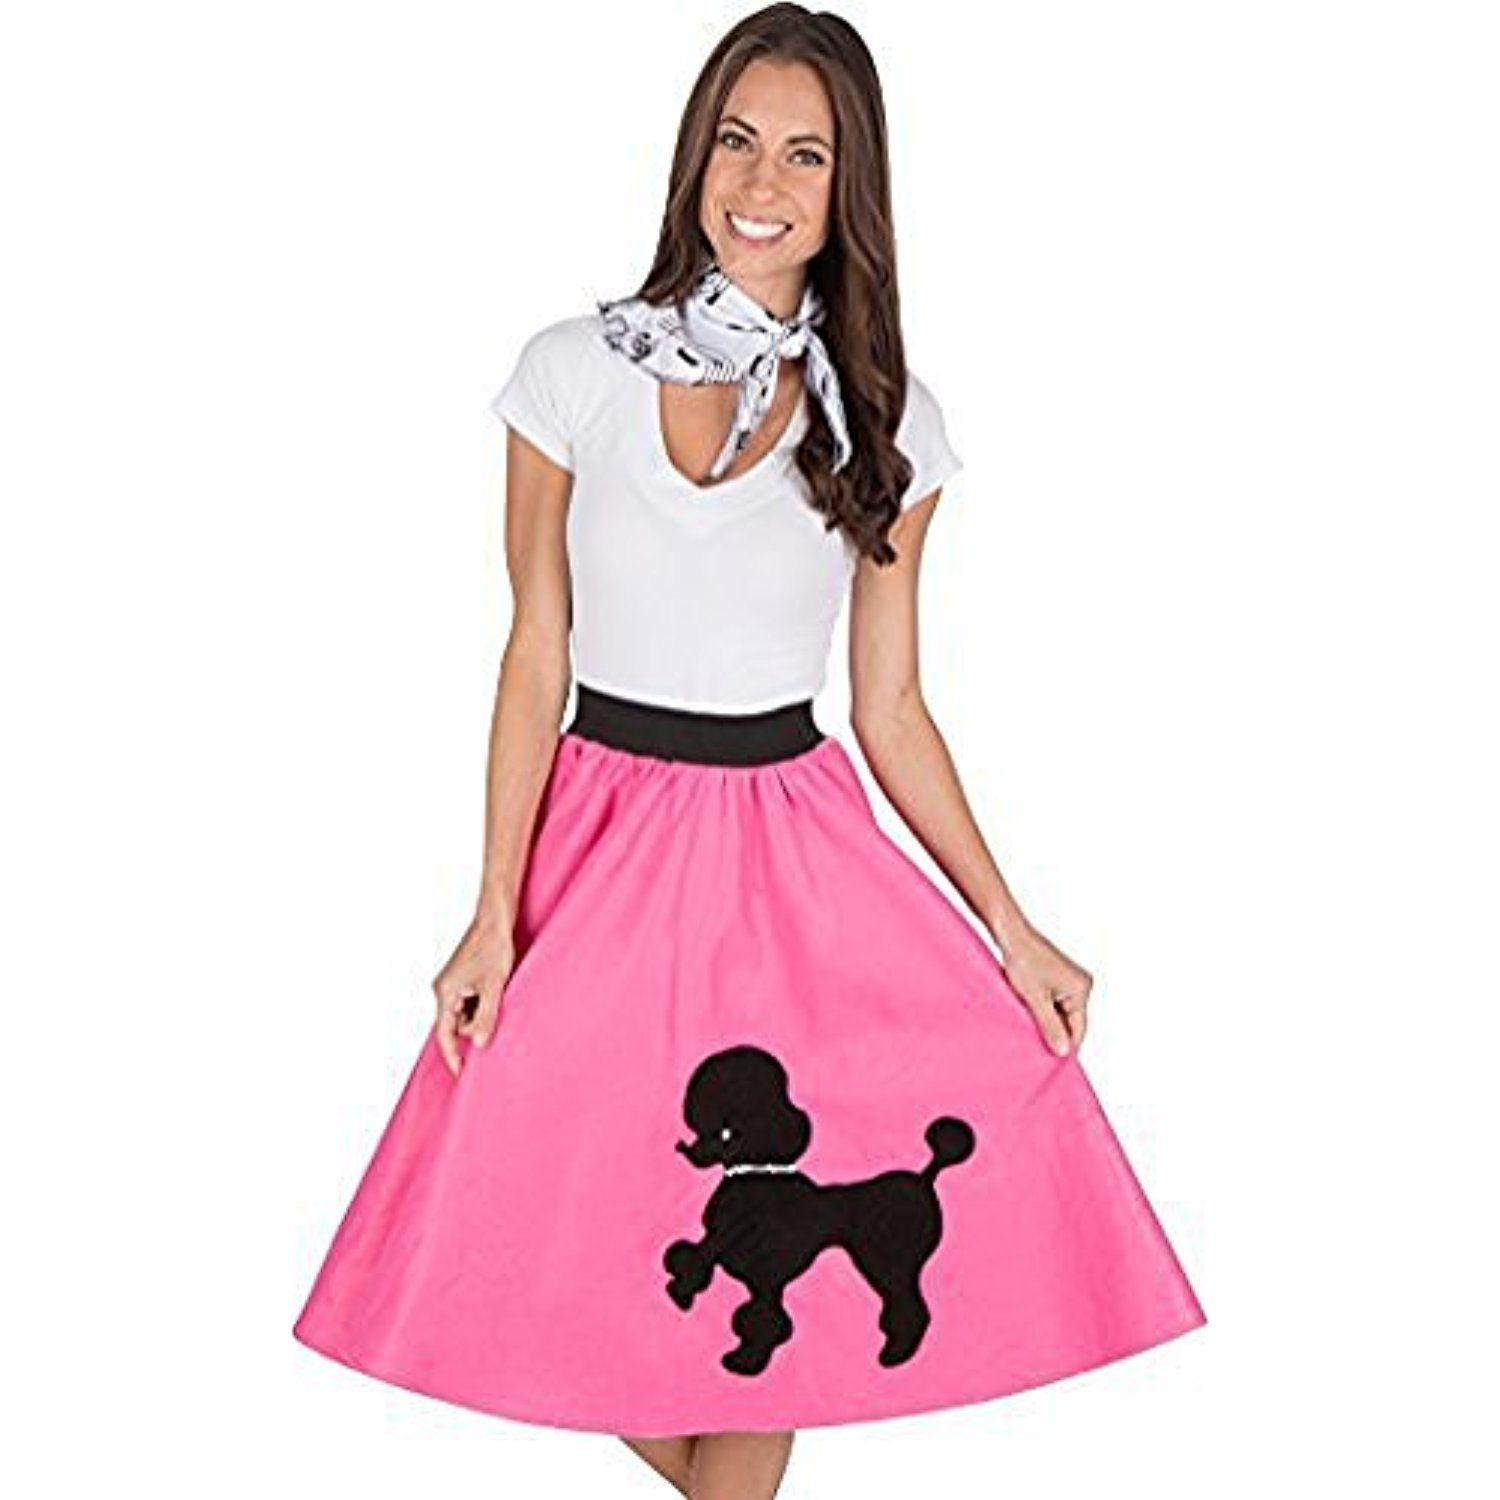 Adult Poodle Skirt with Musical Note printed Scarf Hot Pink by ...